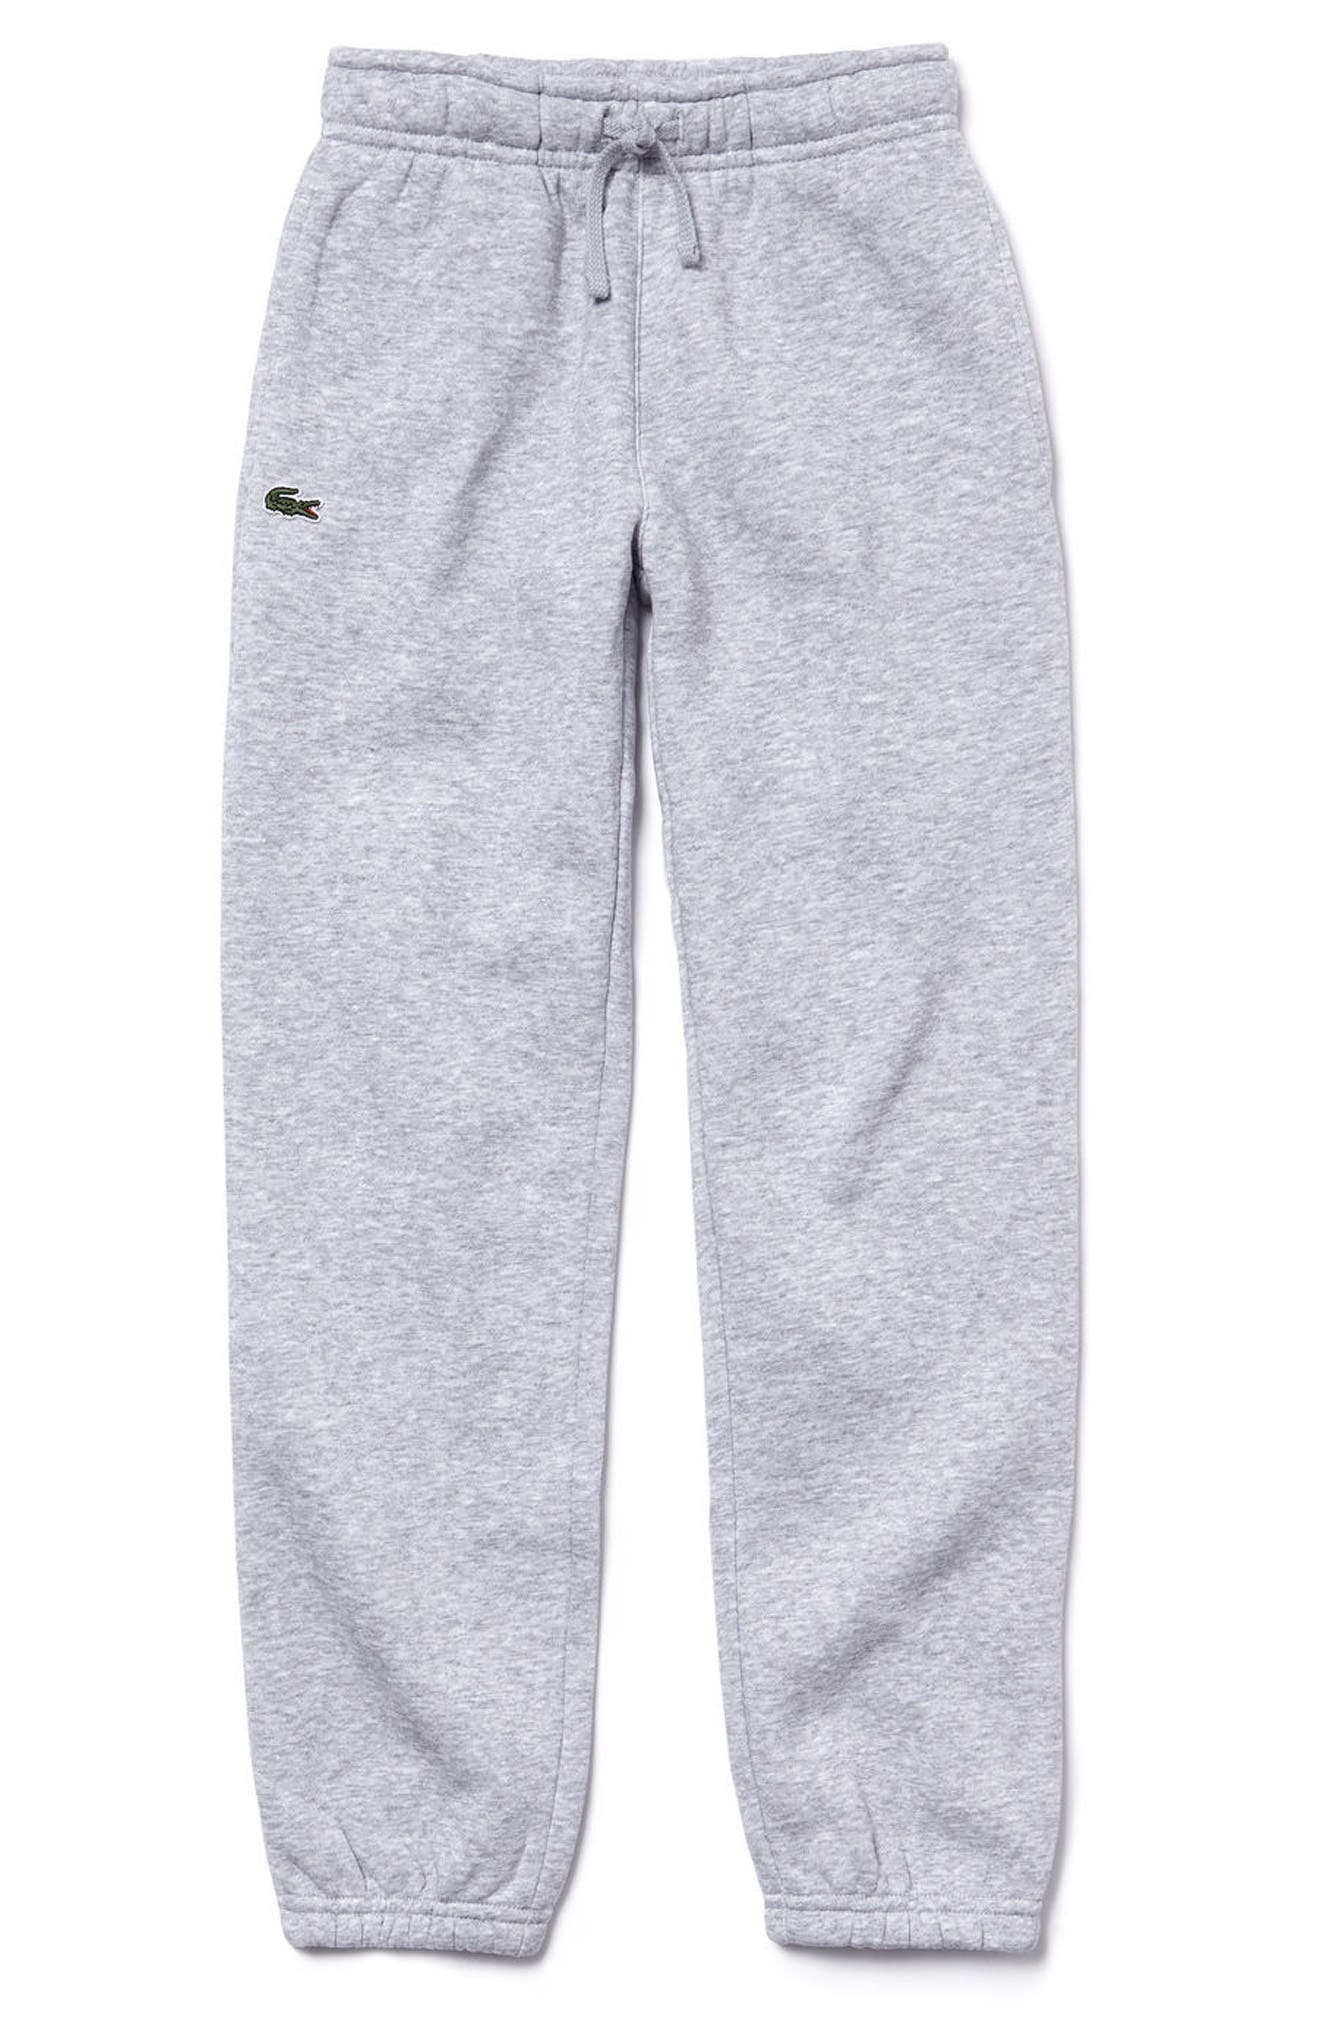 Sport Sweatpants,                             Main thumbnail 1, color,                             Silver Grey Chine